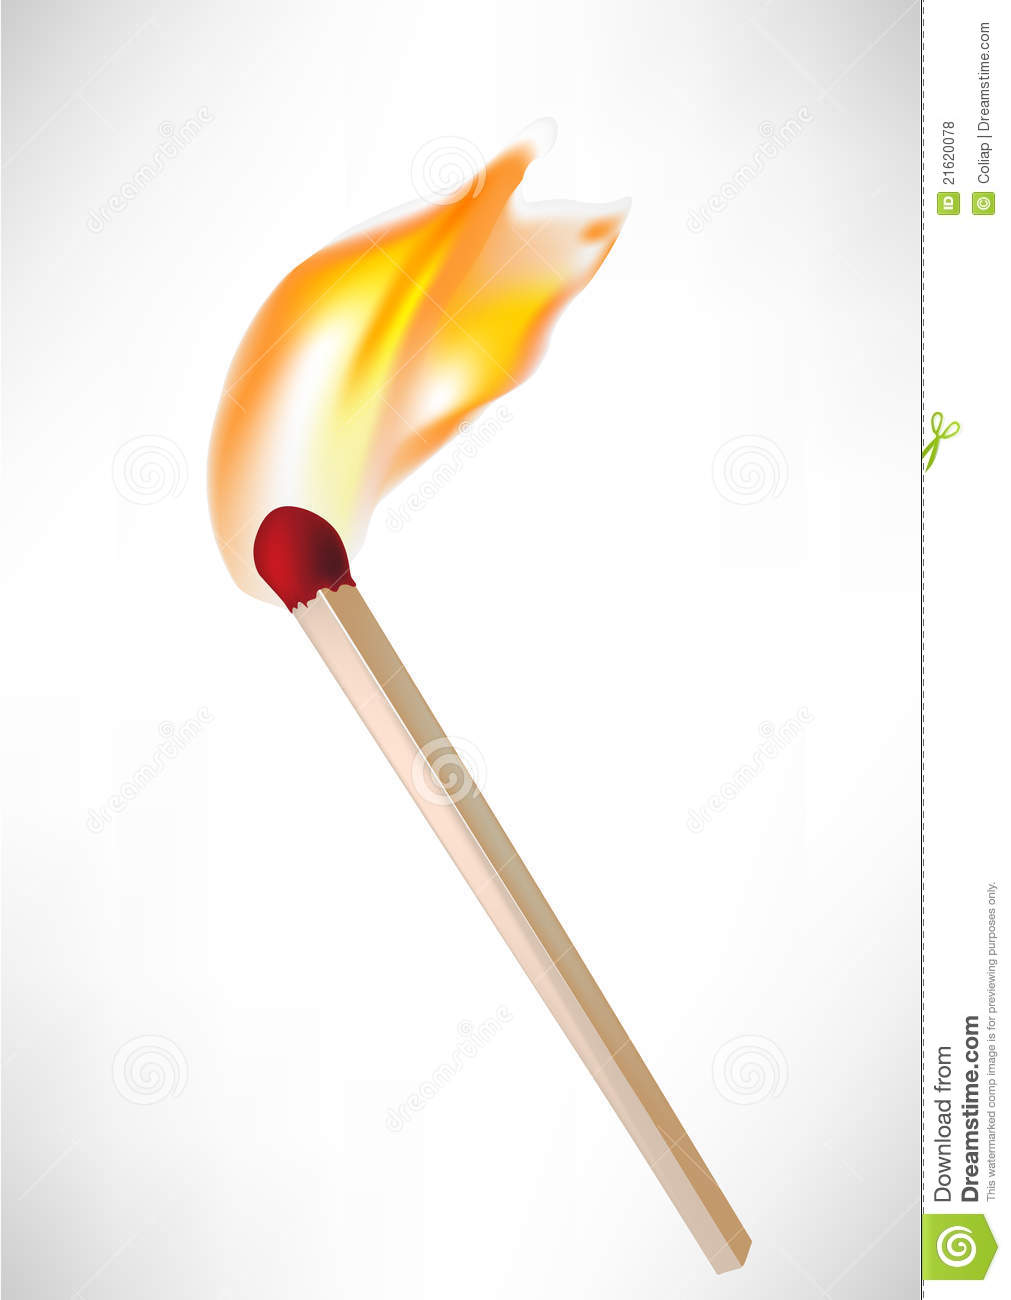 Wooden Match With Flame Royalty Free Stock Photos Image